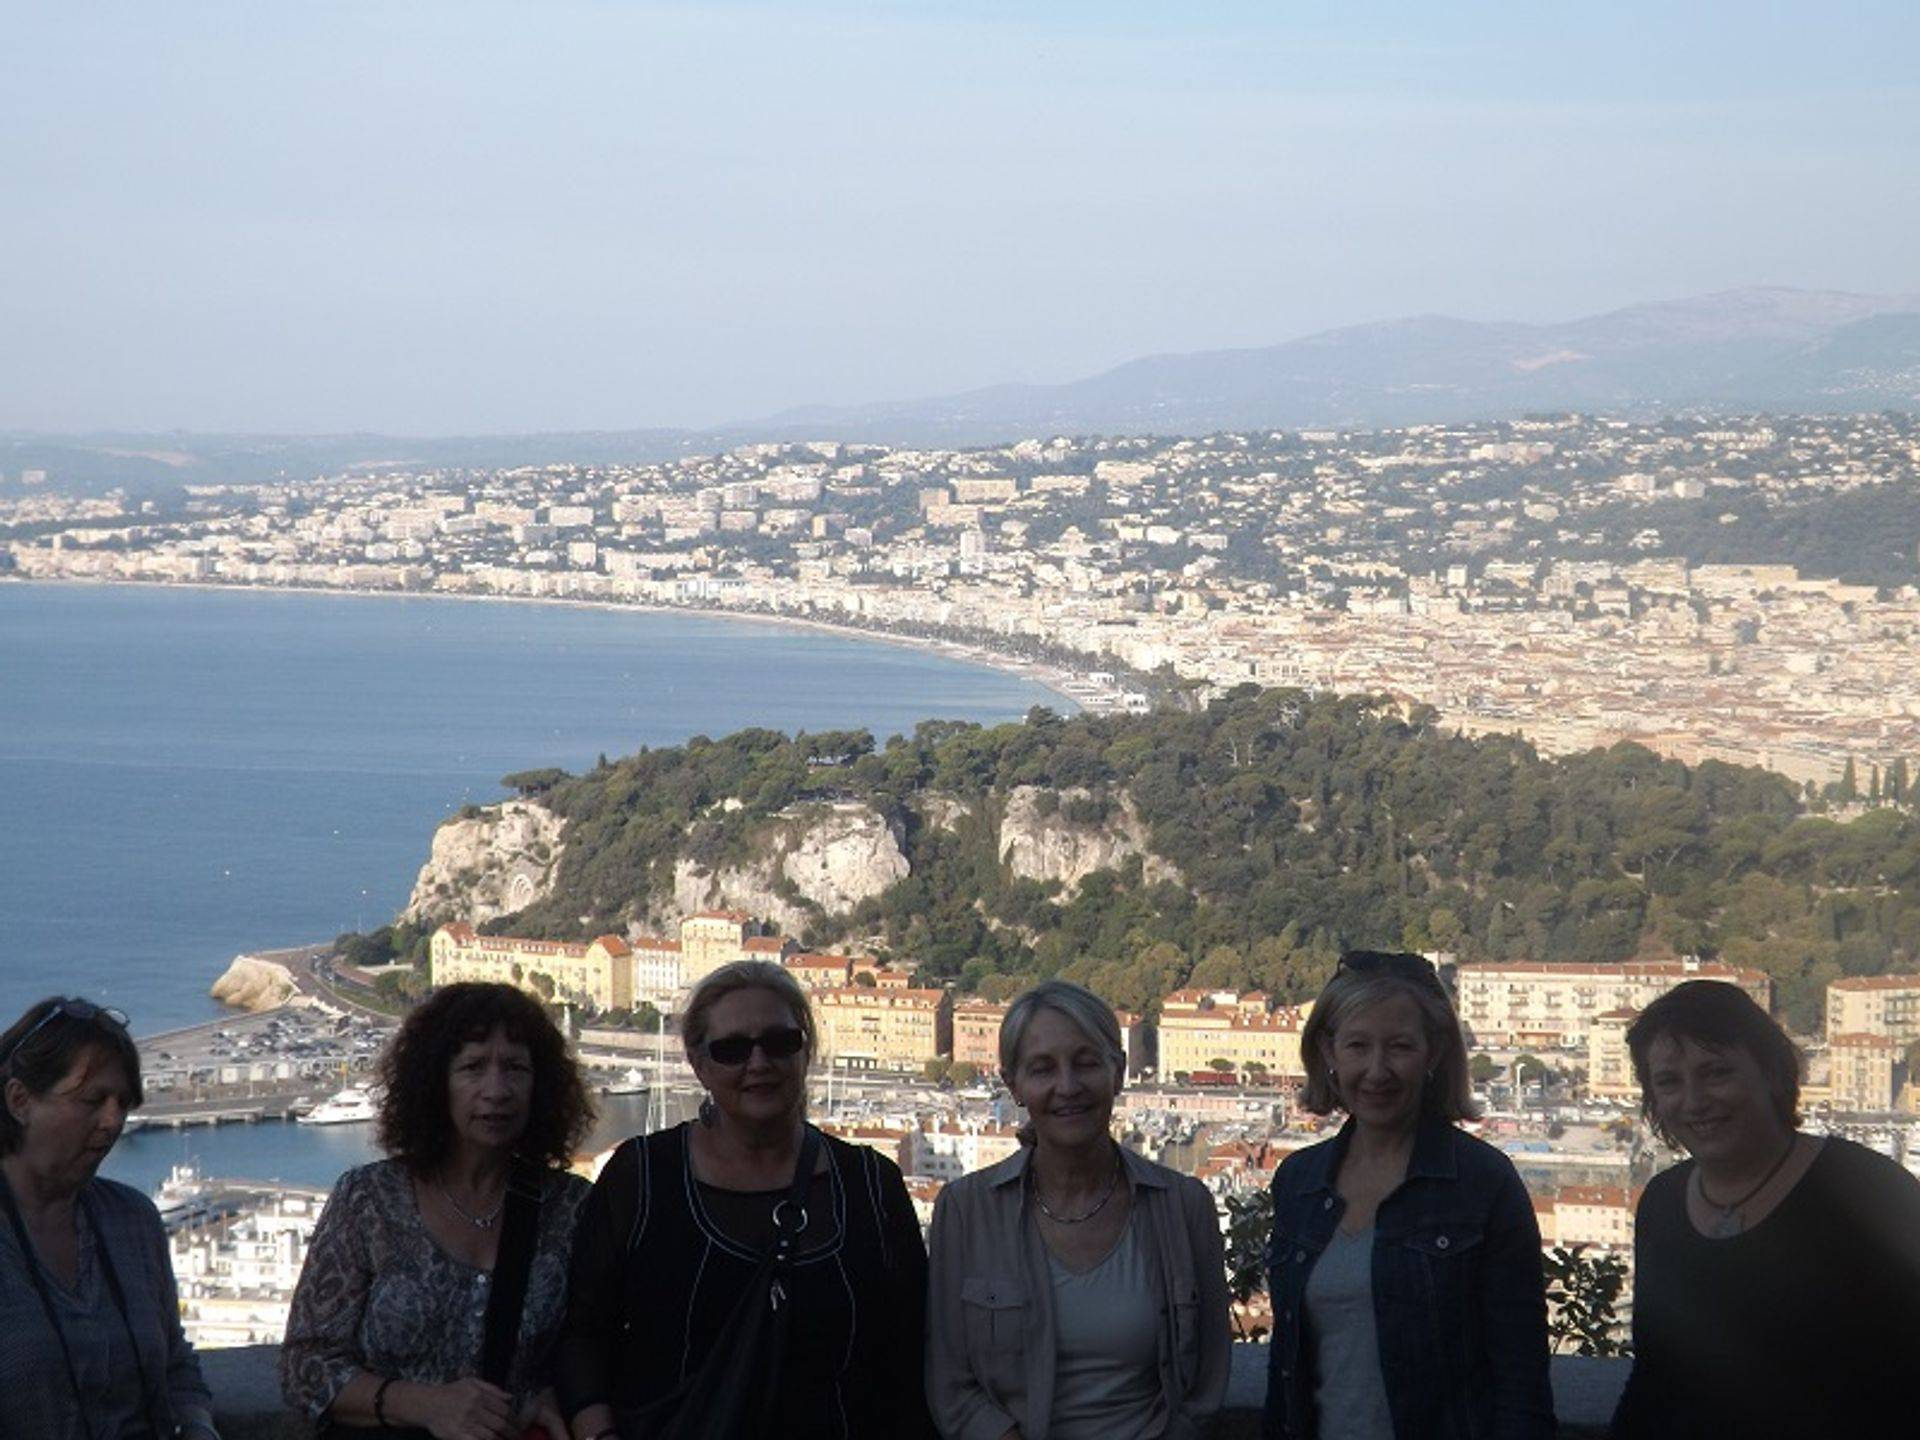 alt= Travel group Nice, France